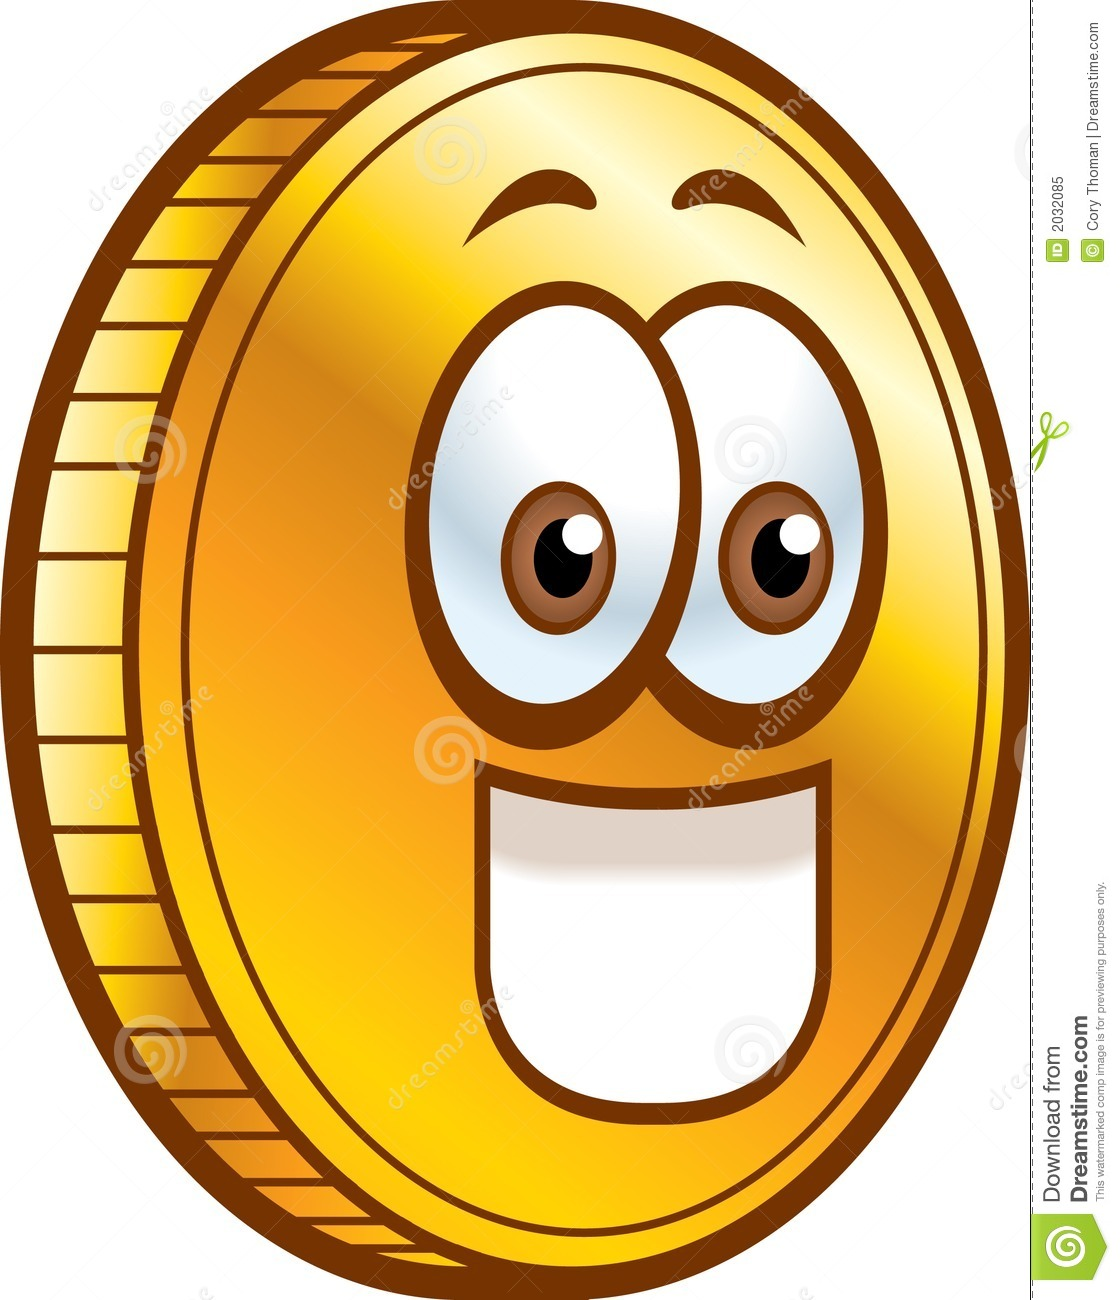 Coin clipart cartoon. Coins free download best